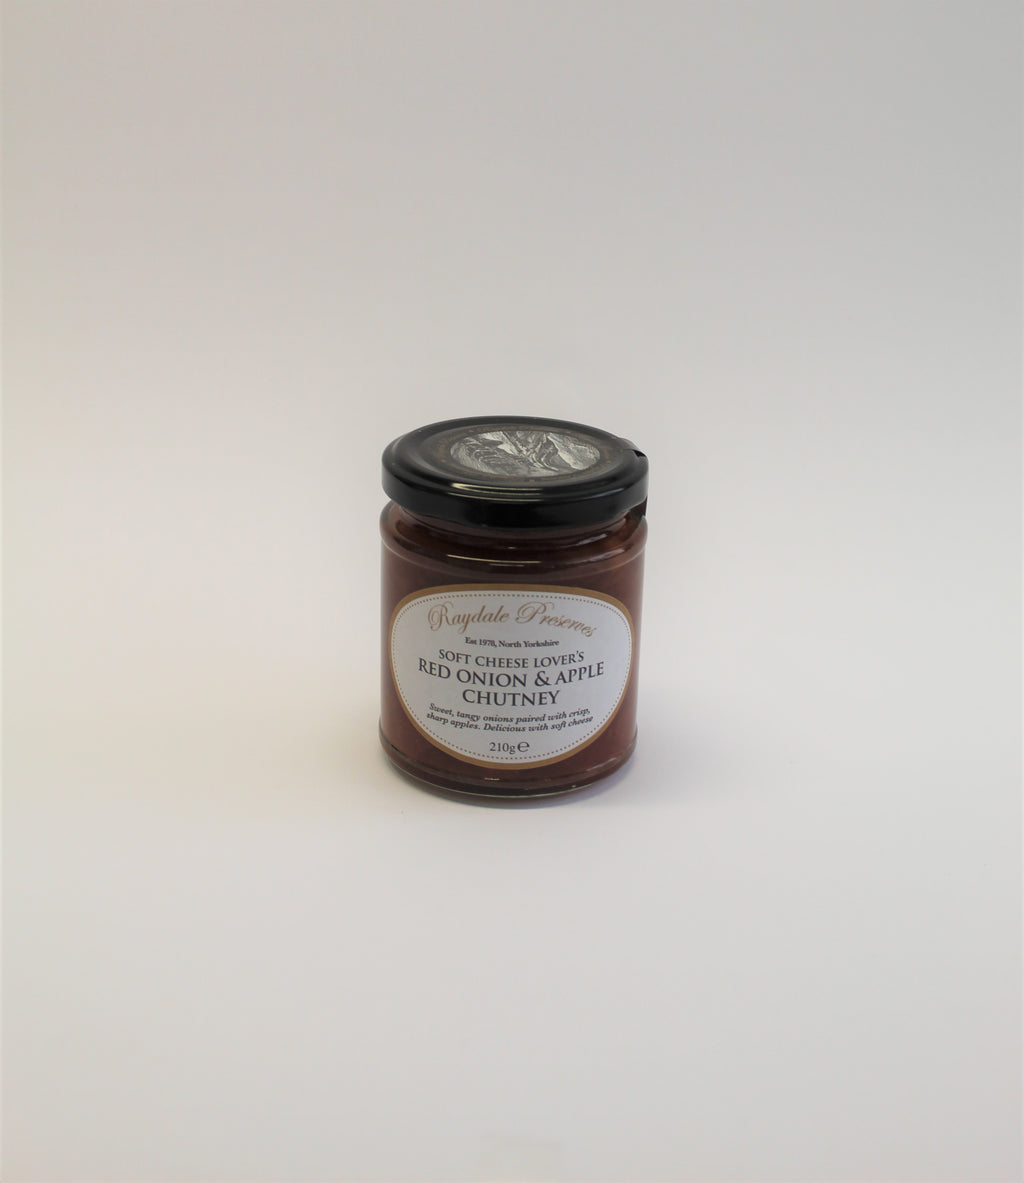 Soft cheese lover's red onion & apple chutney